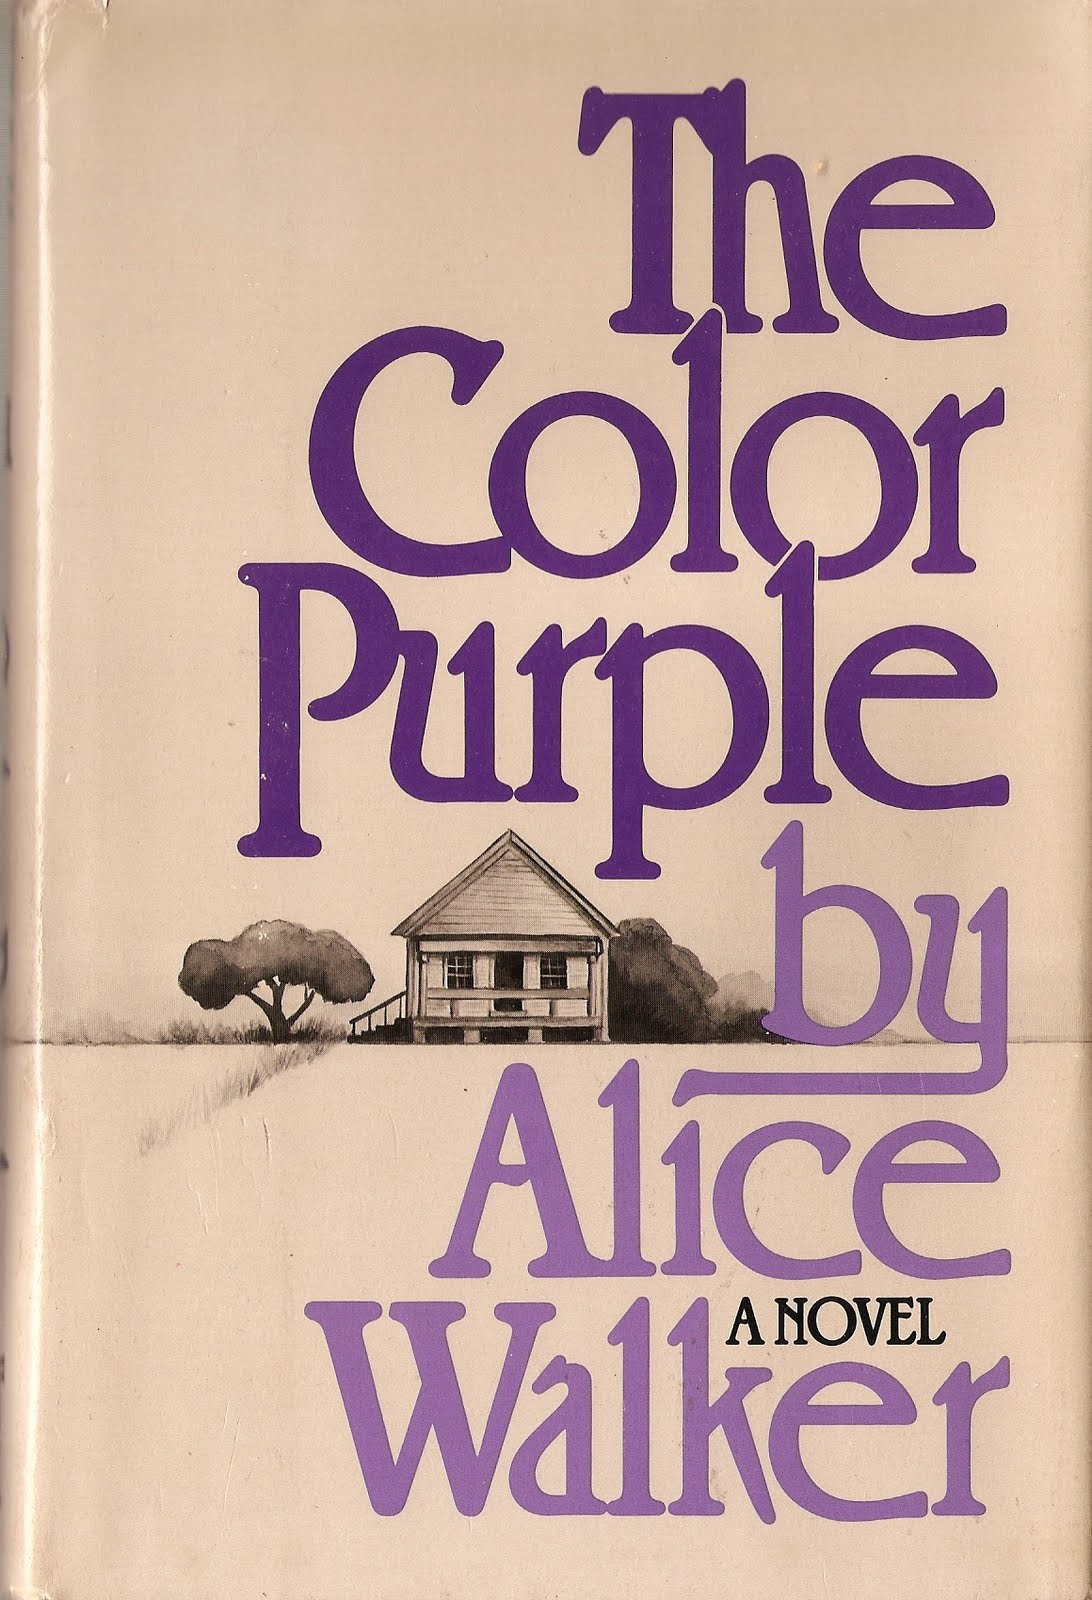 Worth Reading It?: The Color Purple by Alice Walker